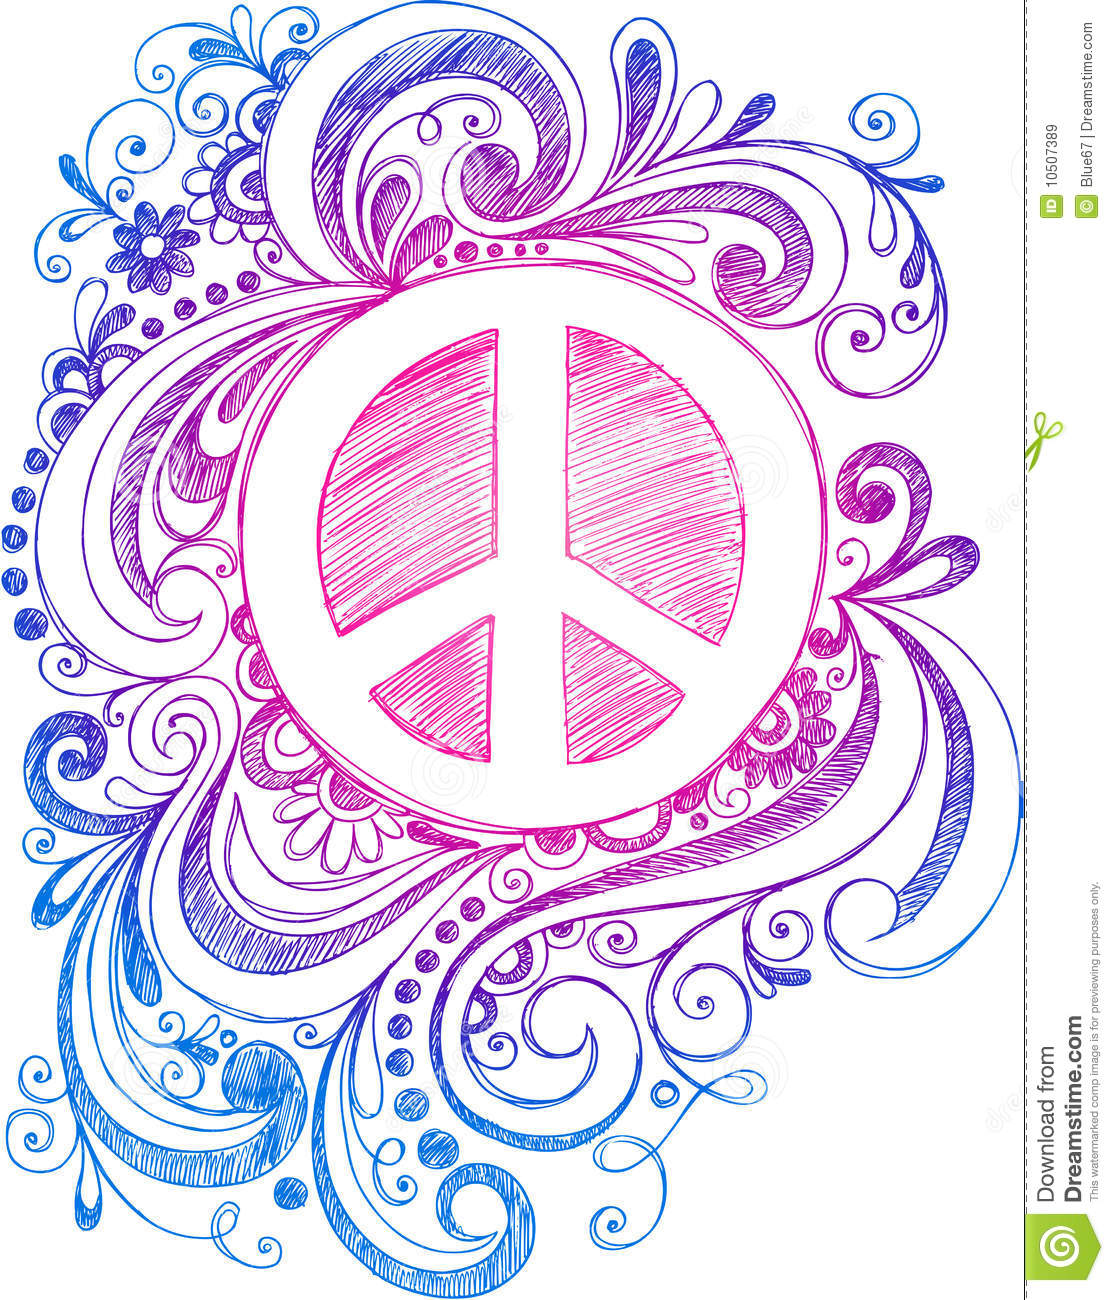 Sketchy doodle peace sign vector stock vector illustration of sketchy doodle peace sign vector buycottarizona